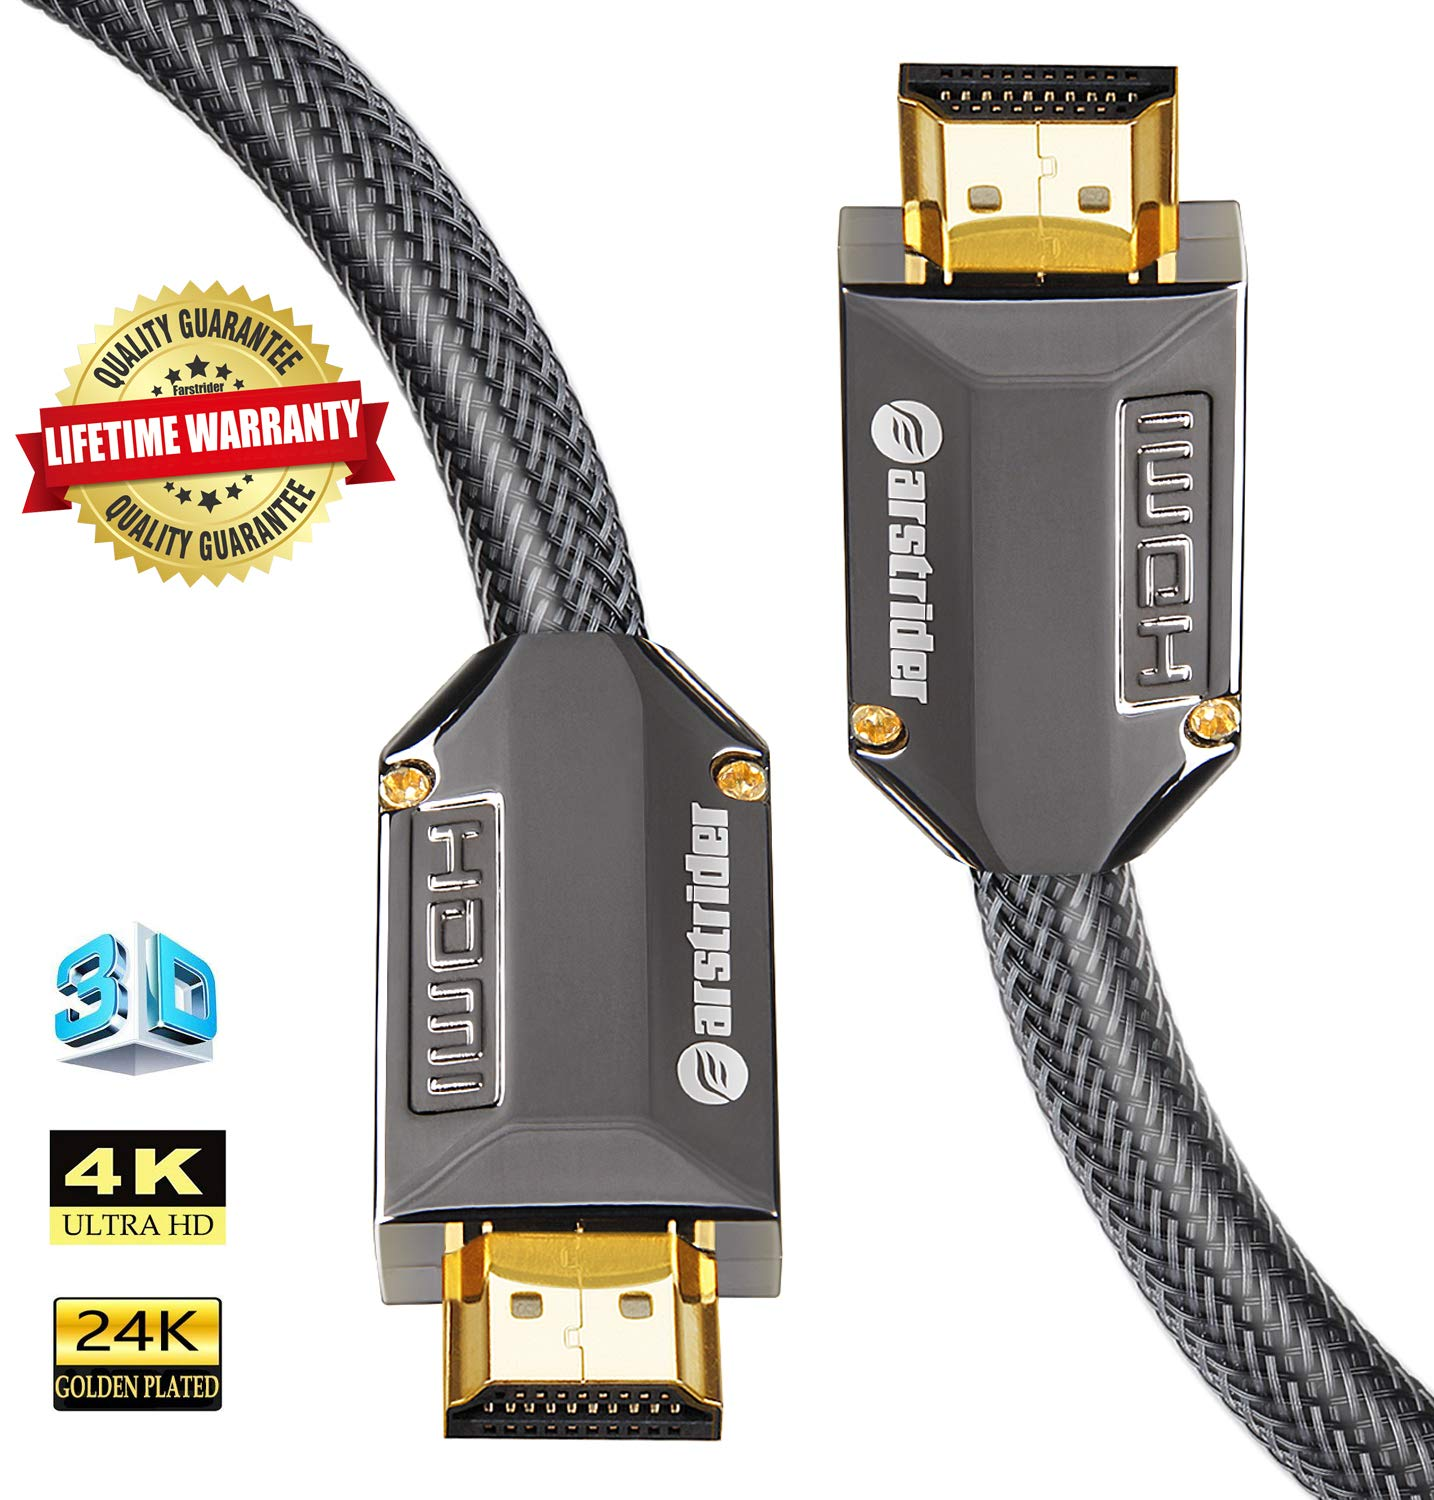 Amazon.com: farstrider HDMI V2.0/1.4 a Cable HDMI Ultra Alta ...